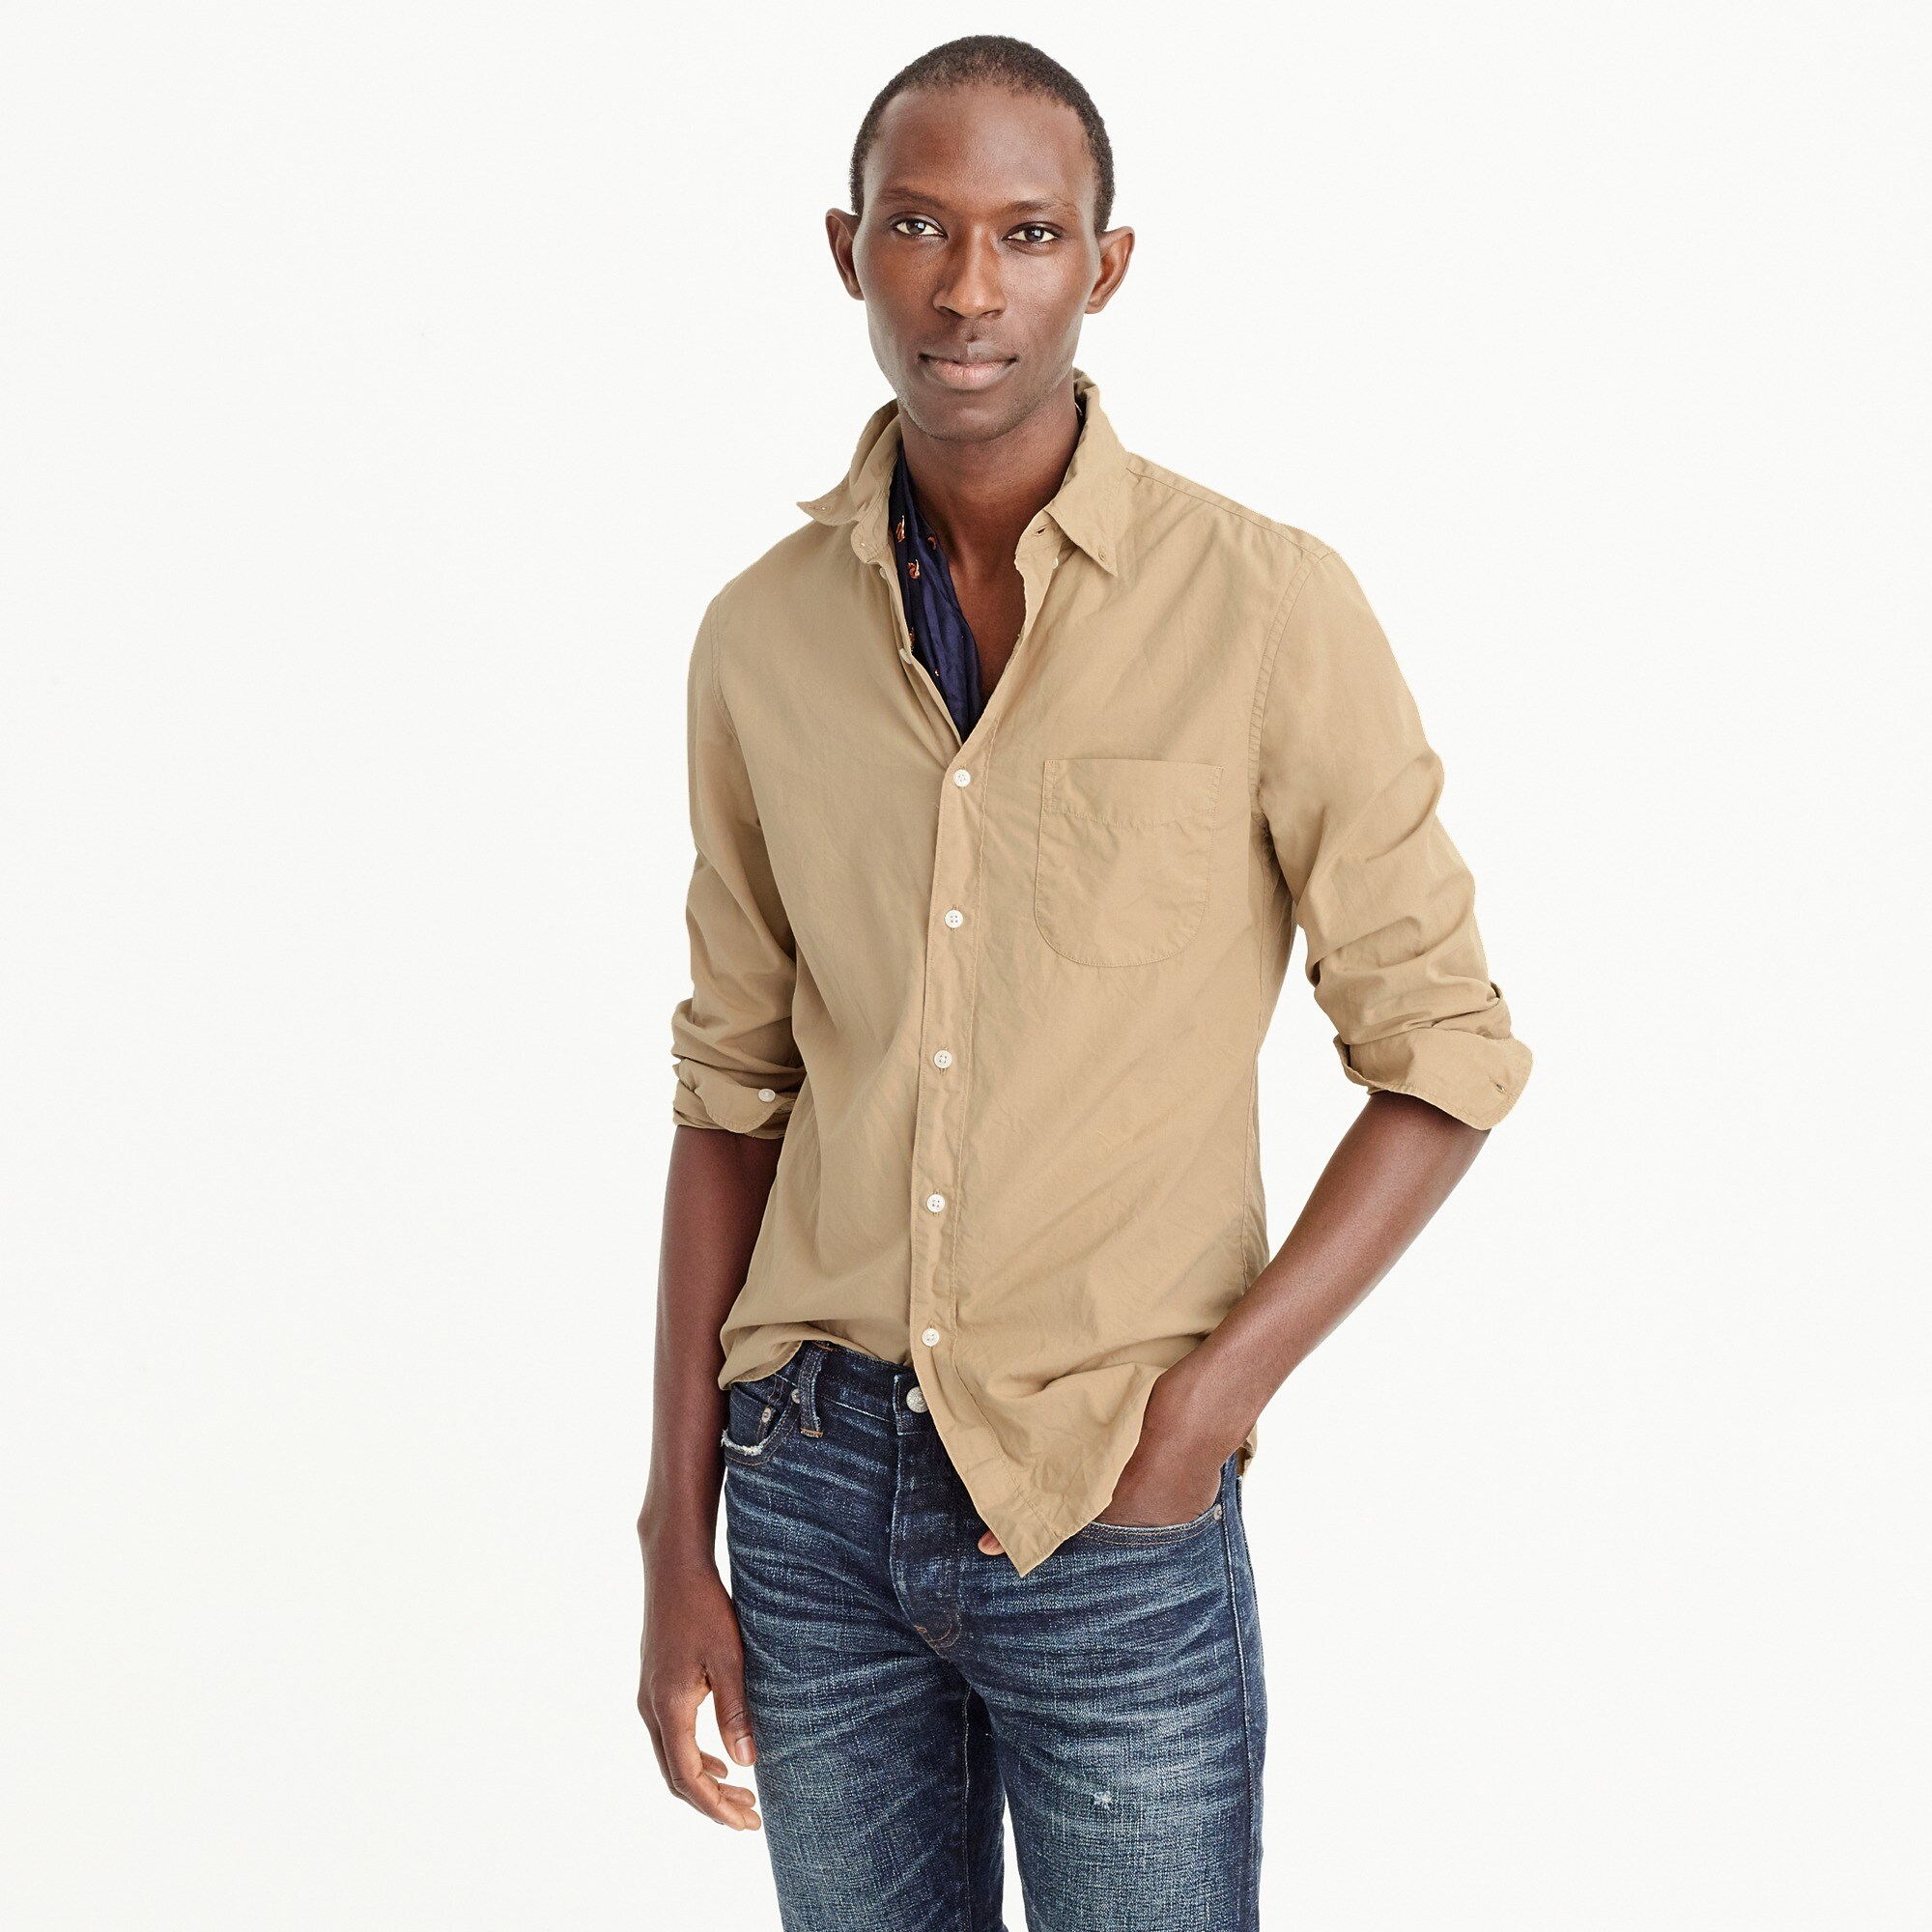 Slim garment-dyed shirt men casual shirts c